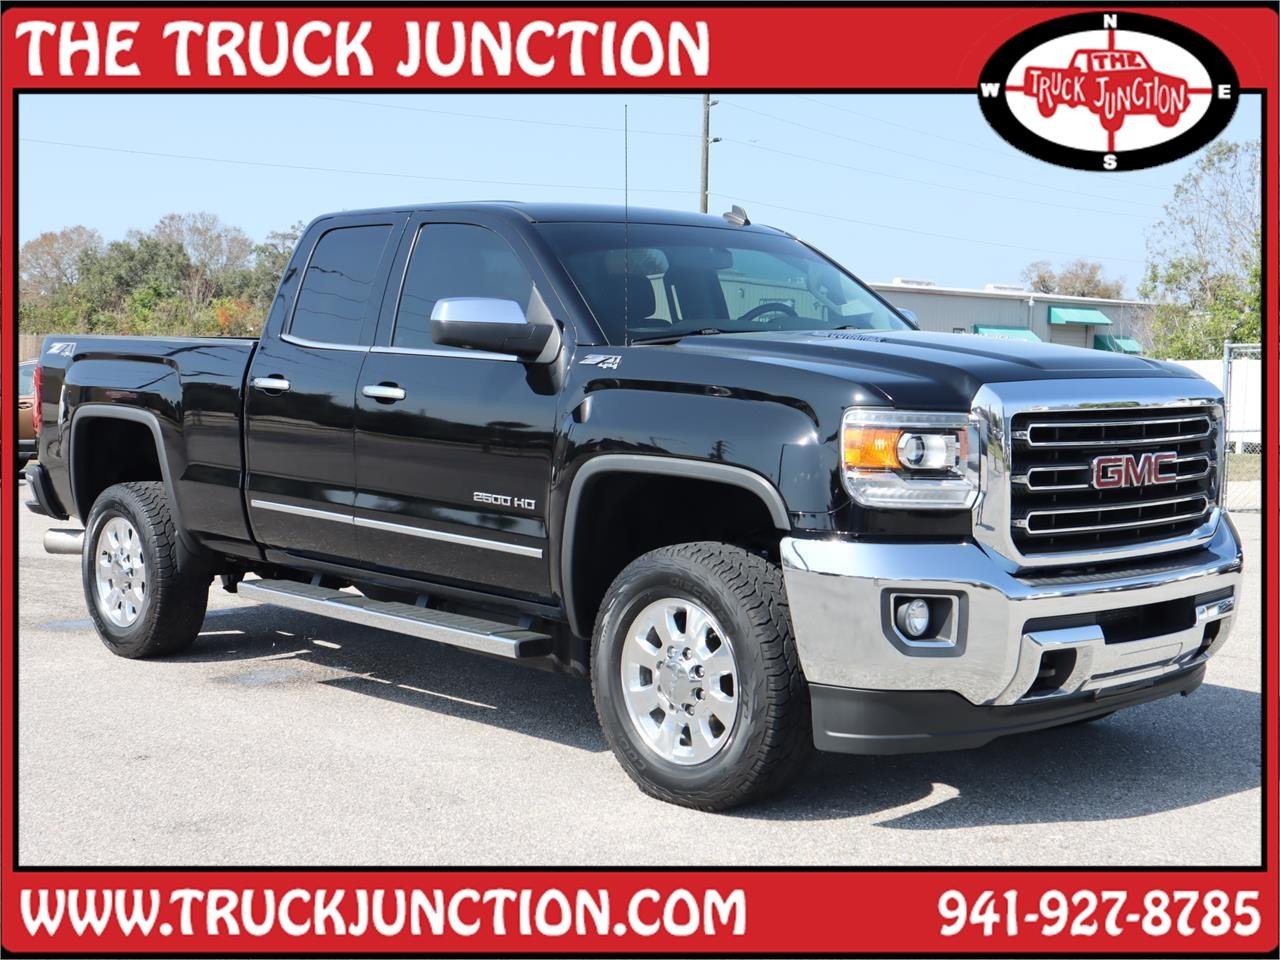 2015 GMC Sierra 2500HD 4WD Double Cab SLT